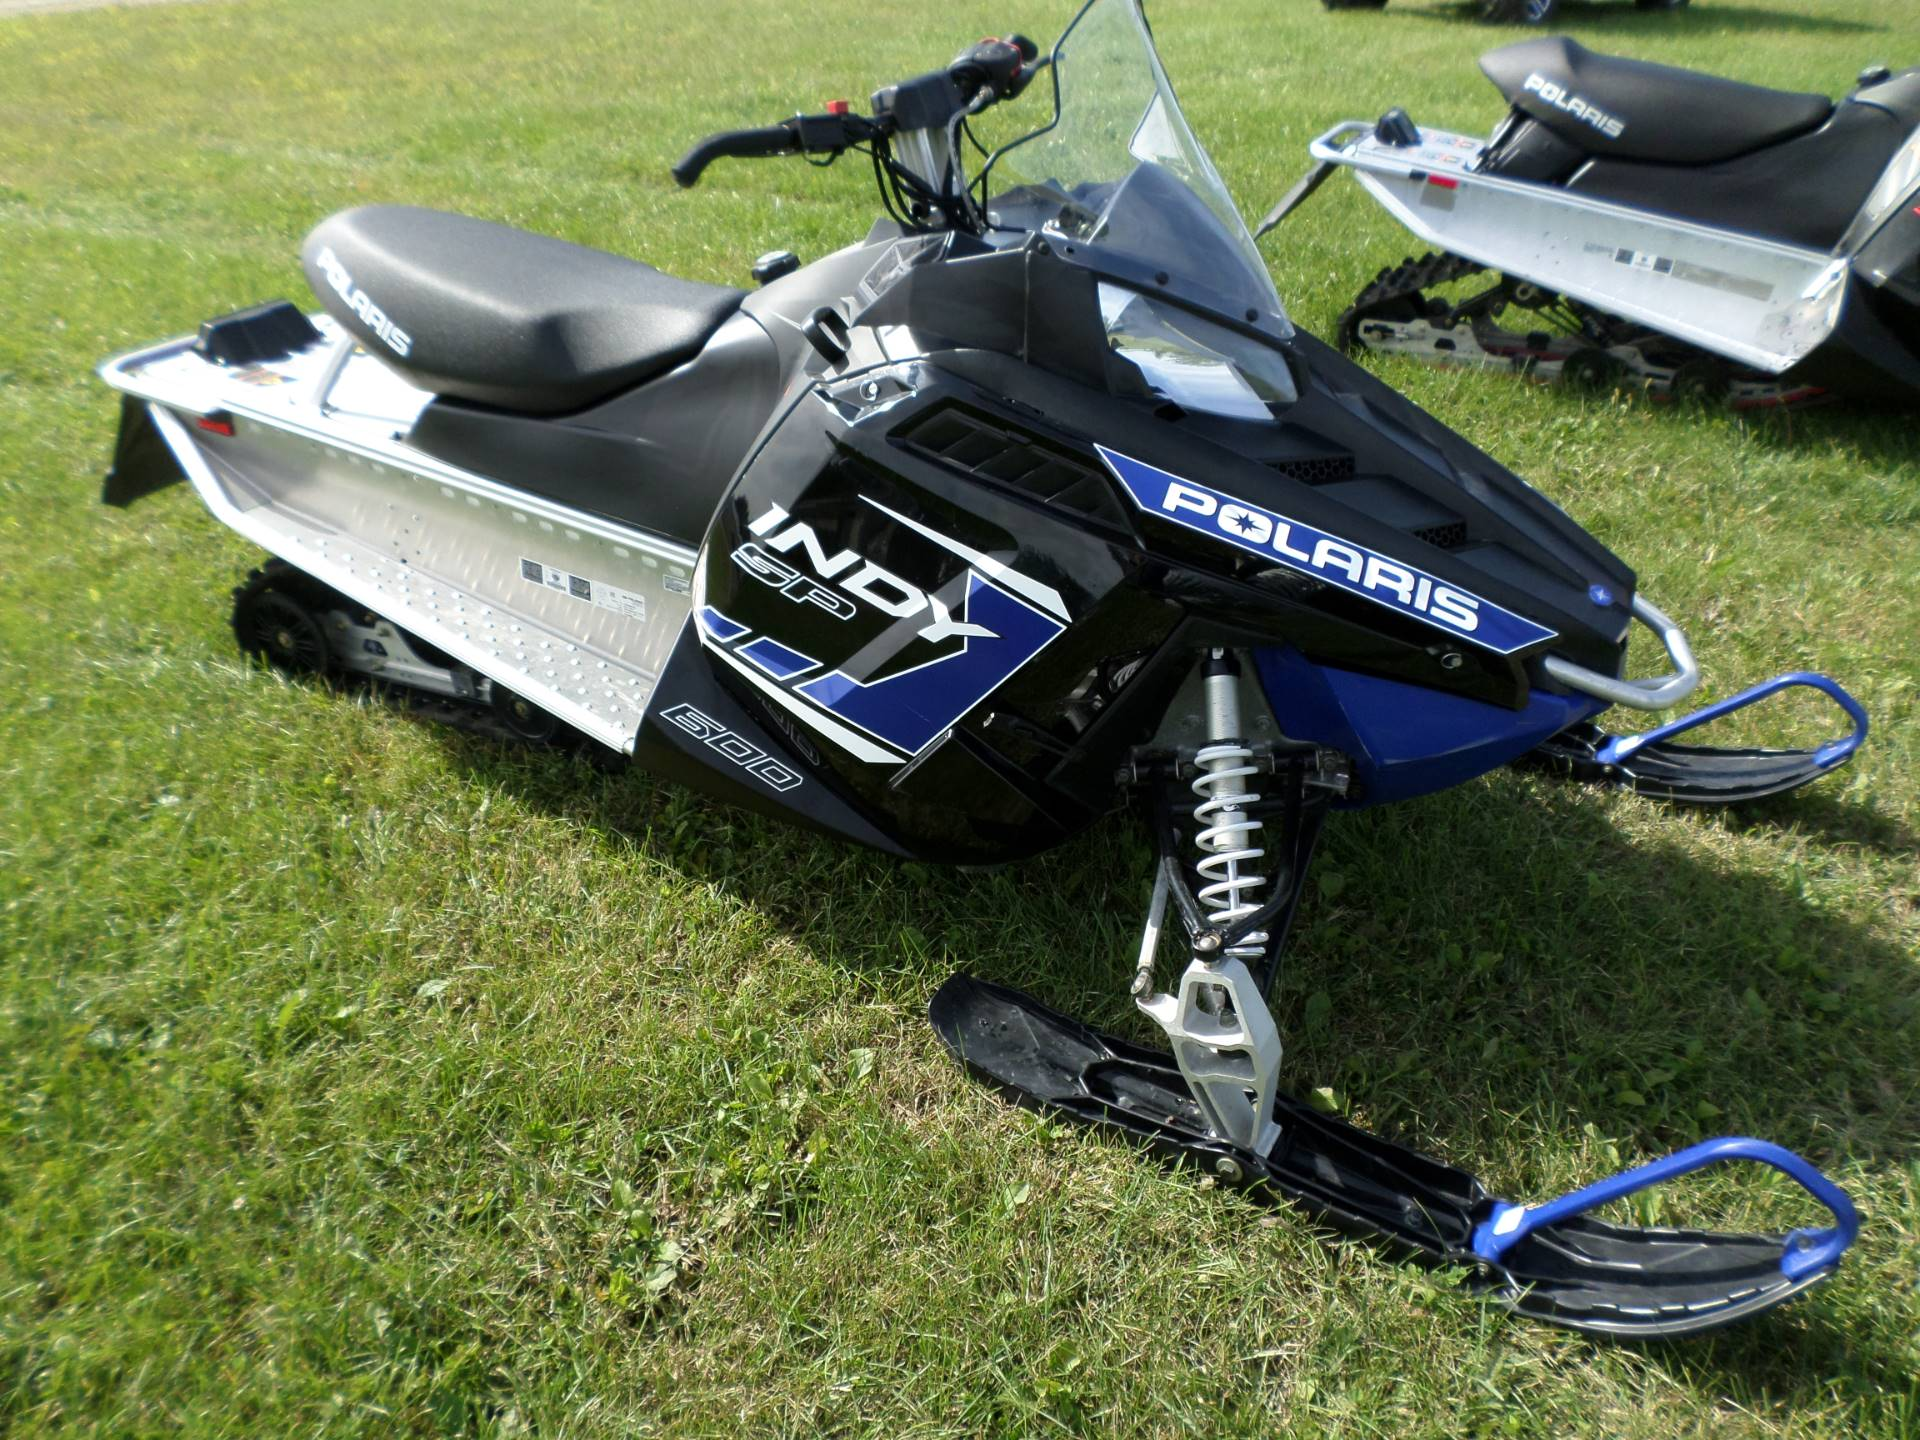 2018 Polaris 600 INDY SP ES in Lake Mills, Iowa